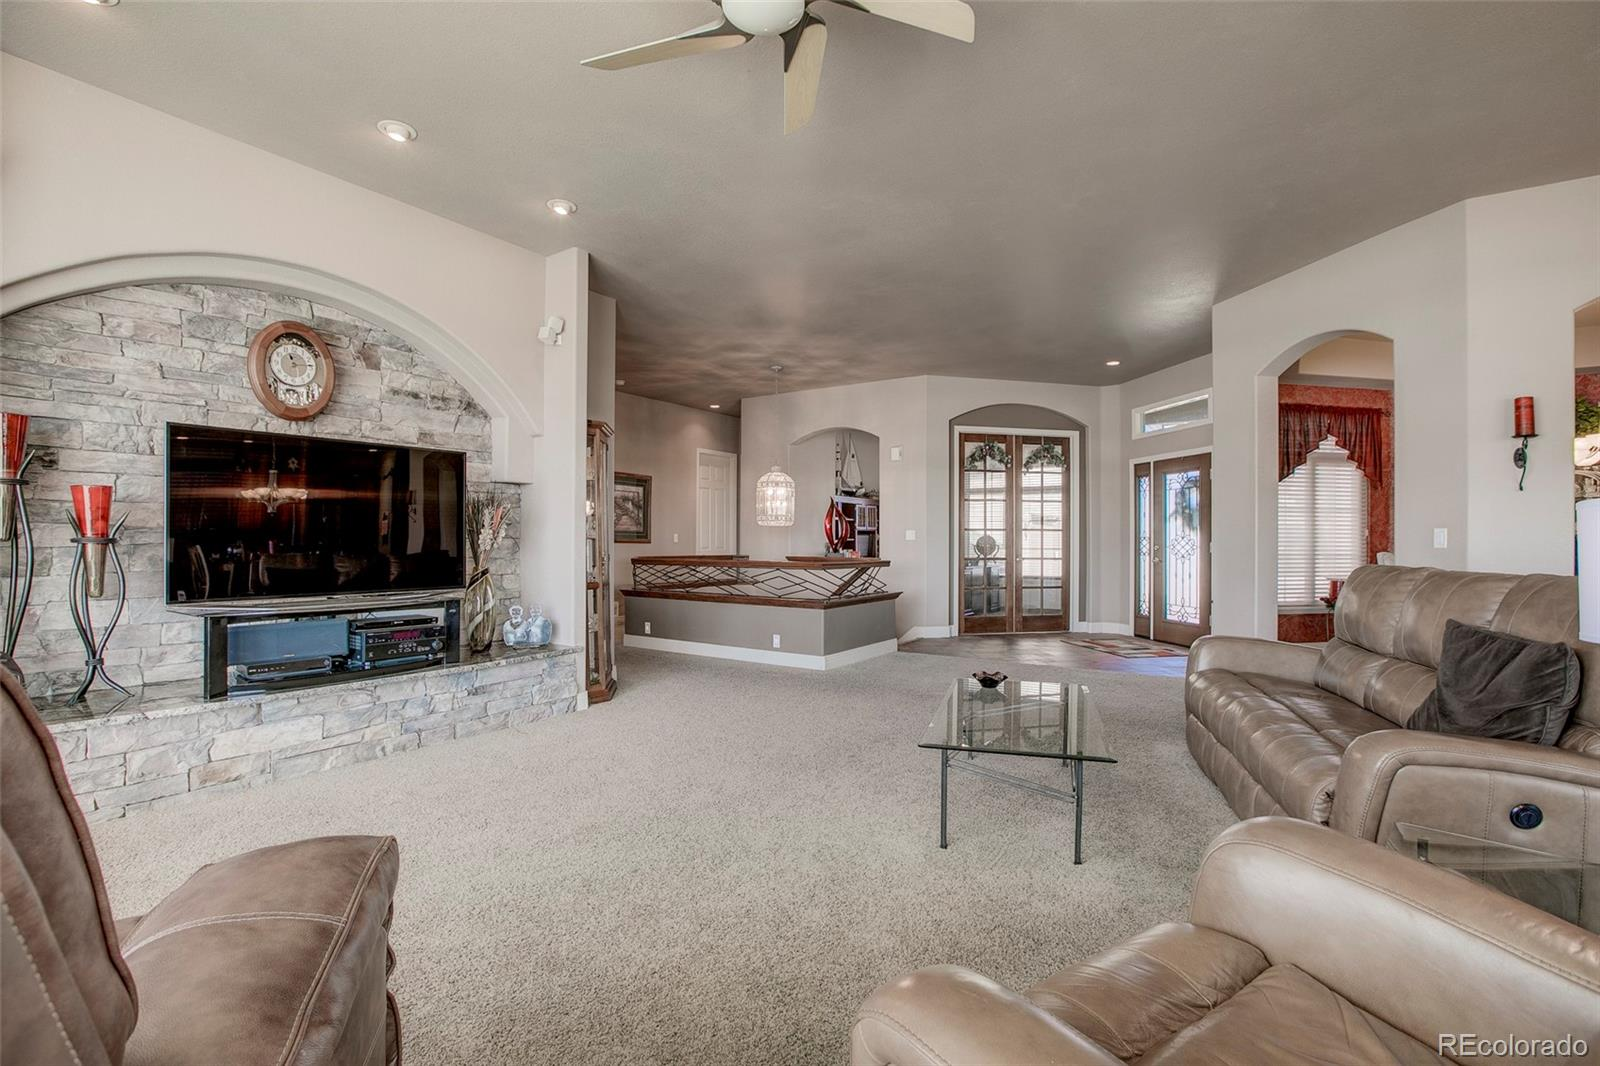 MLS# 7126152 - 9 - 5816 W Conservation Drive, Frederick, CO 80504